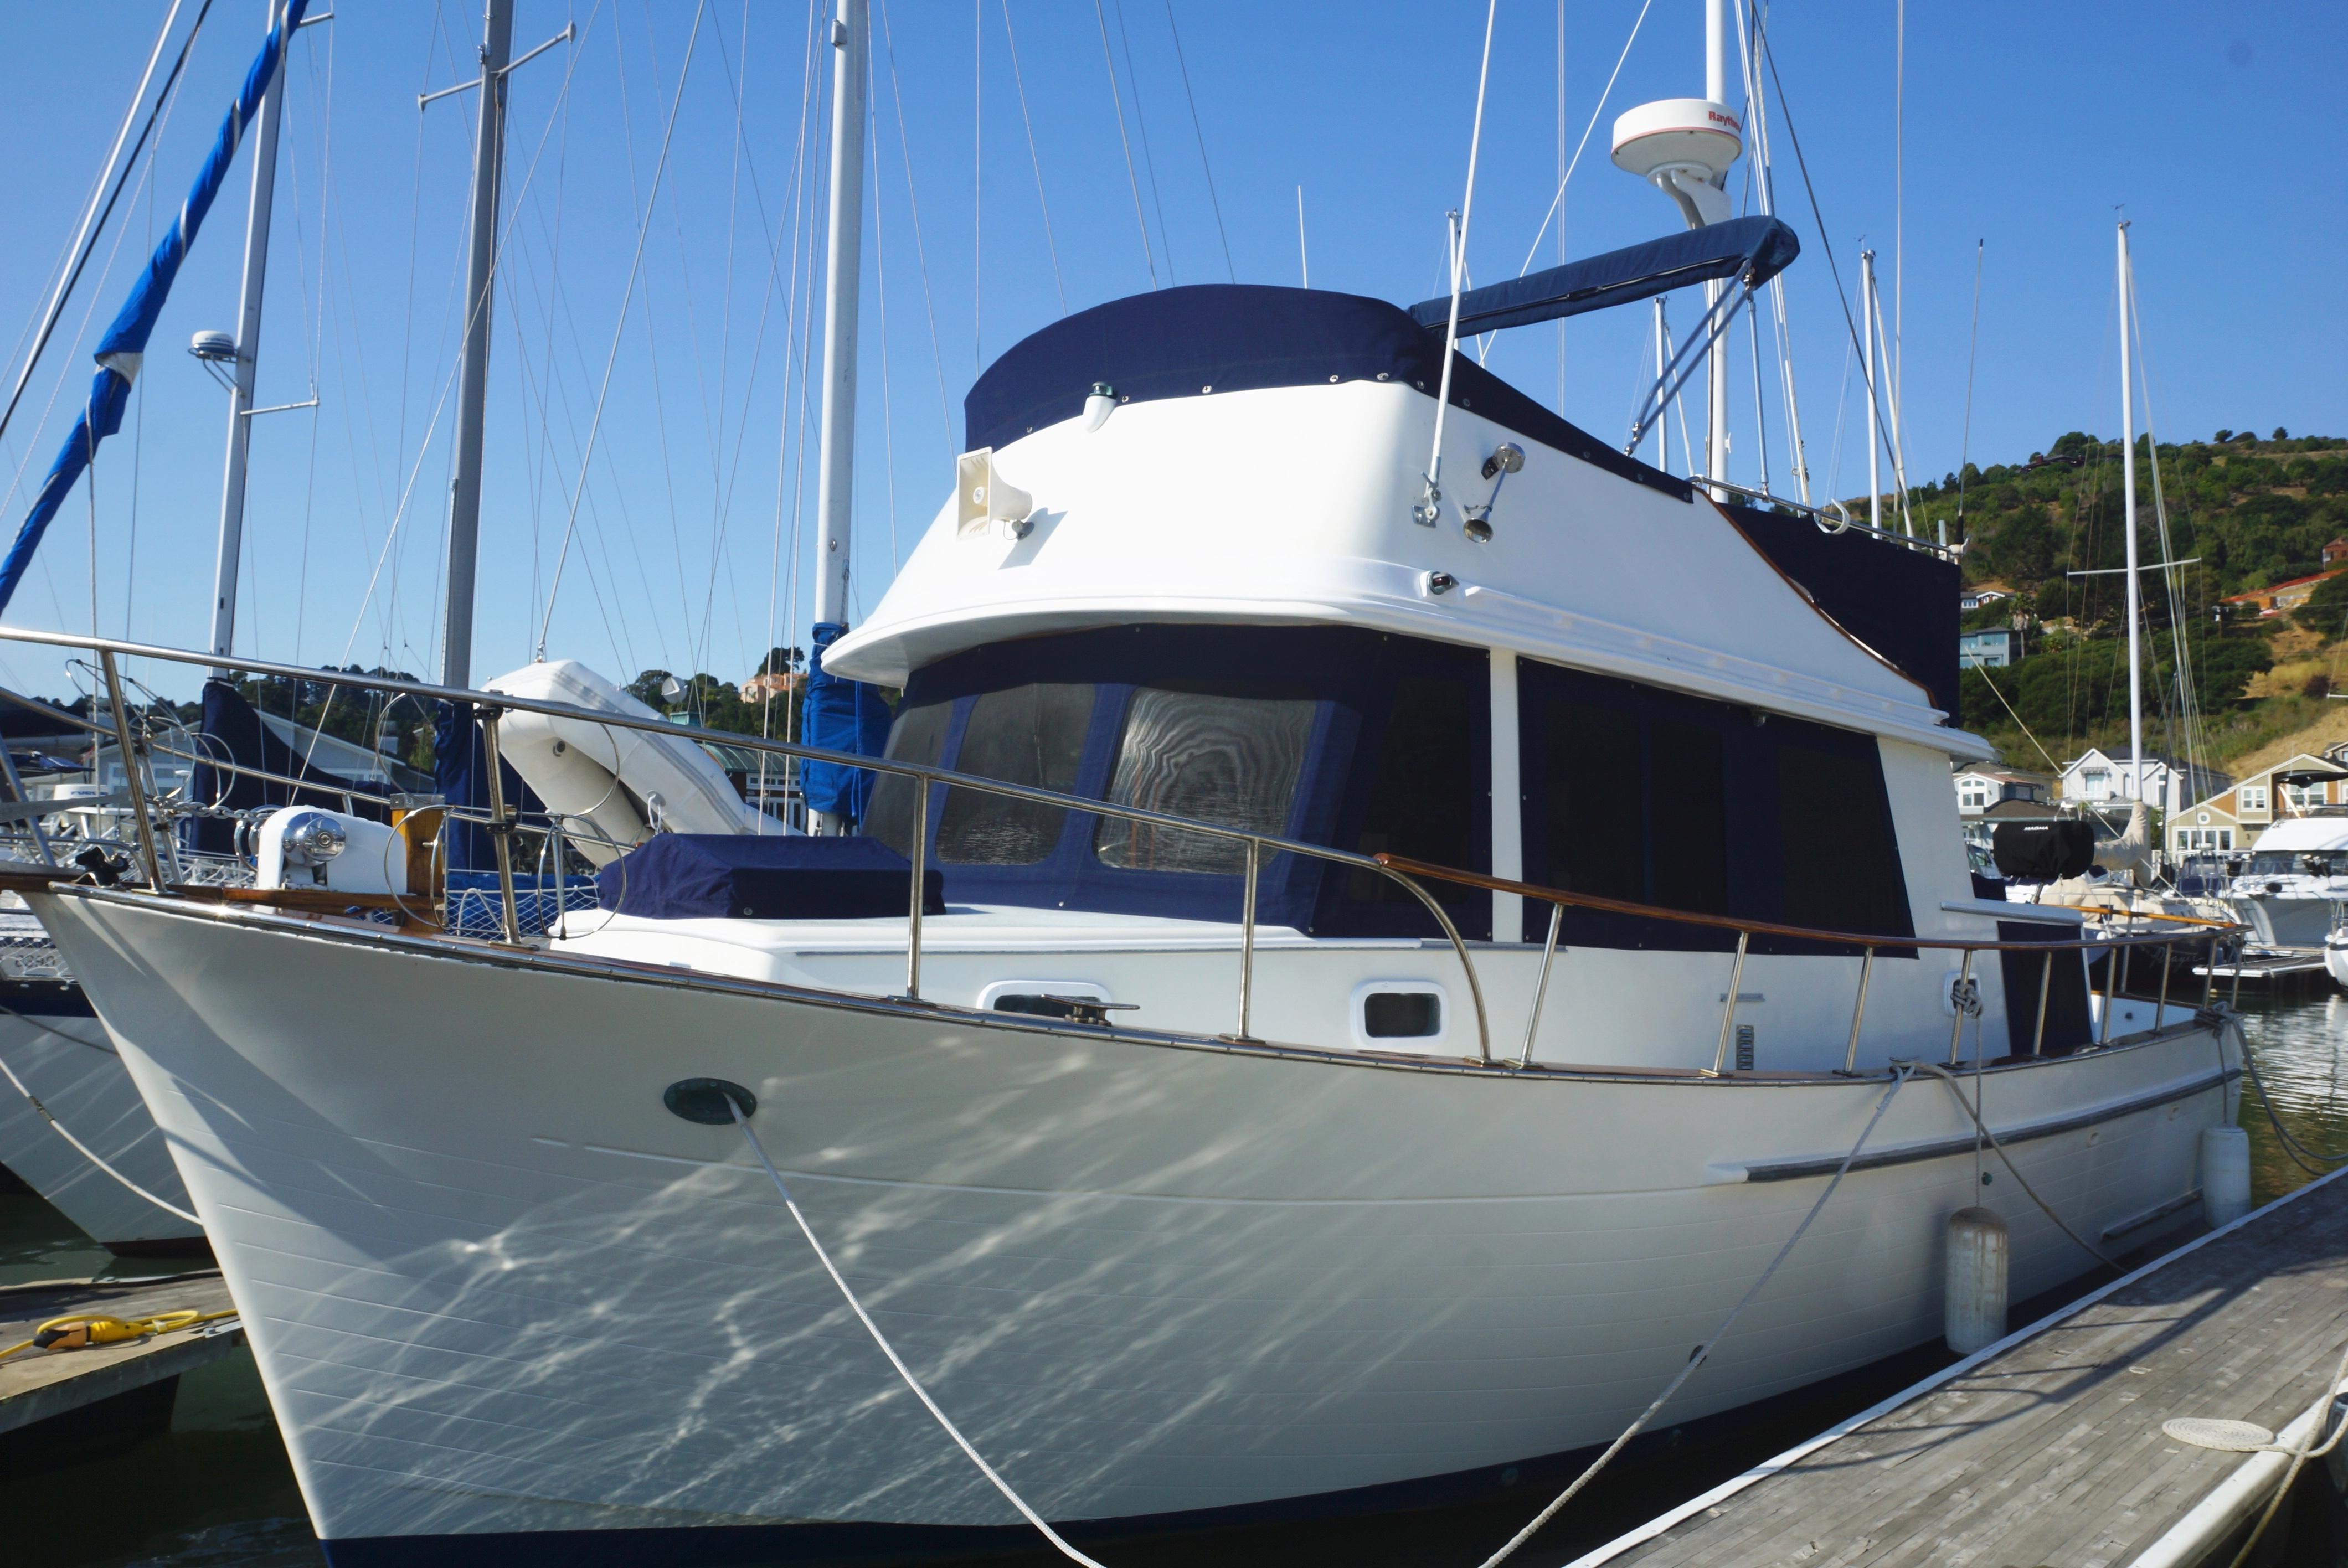 Chb new and used boats for sale in california for Used fishing boats for sale in california